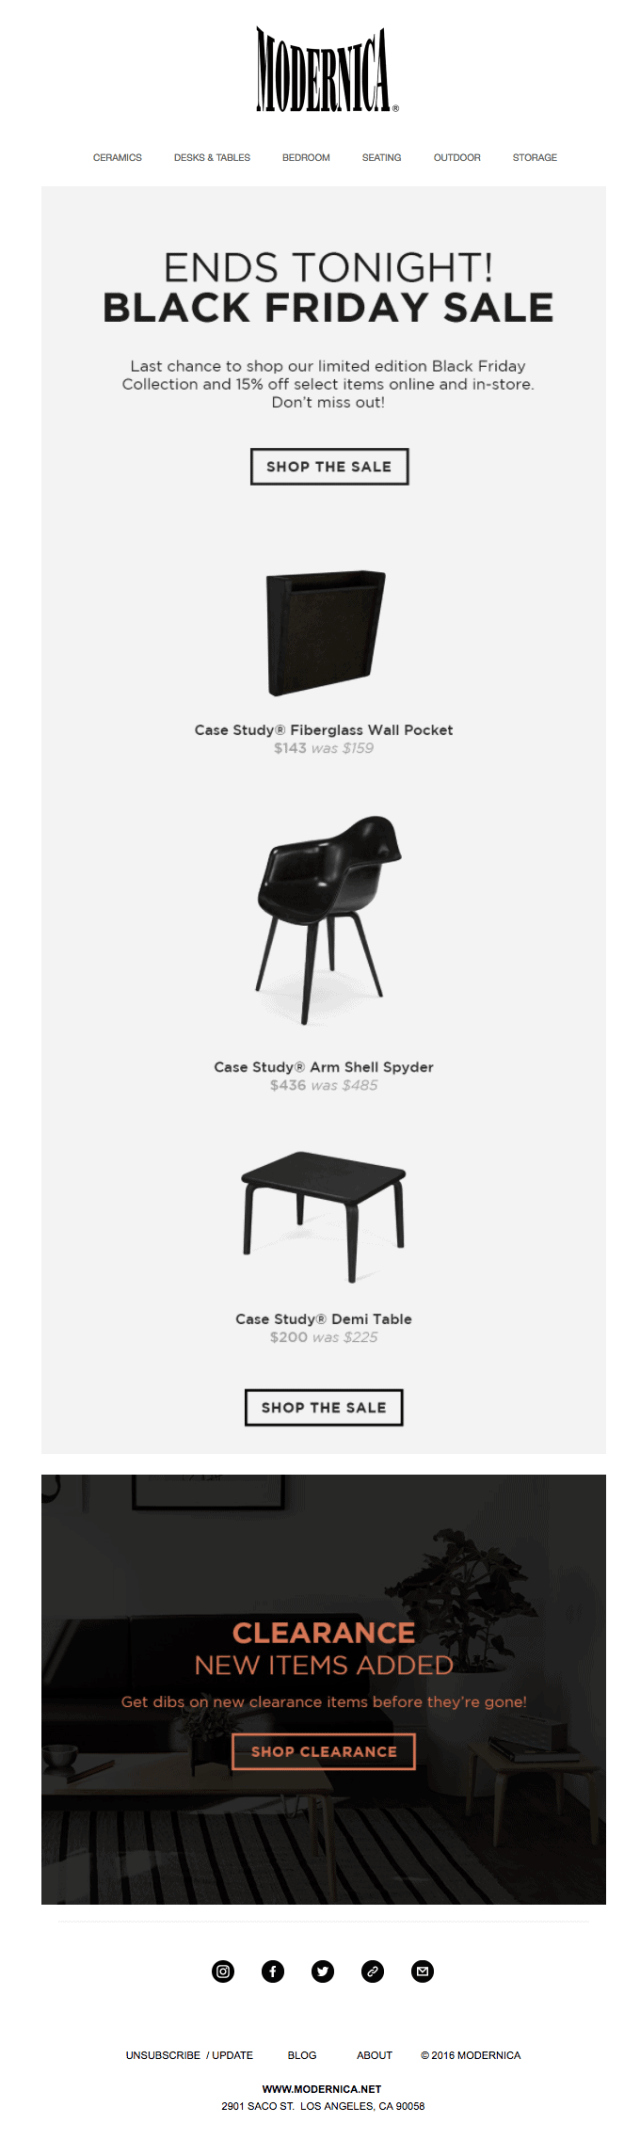 Modernica email